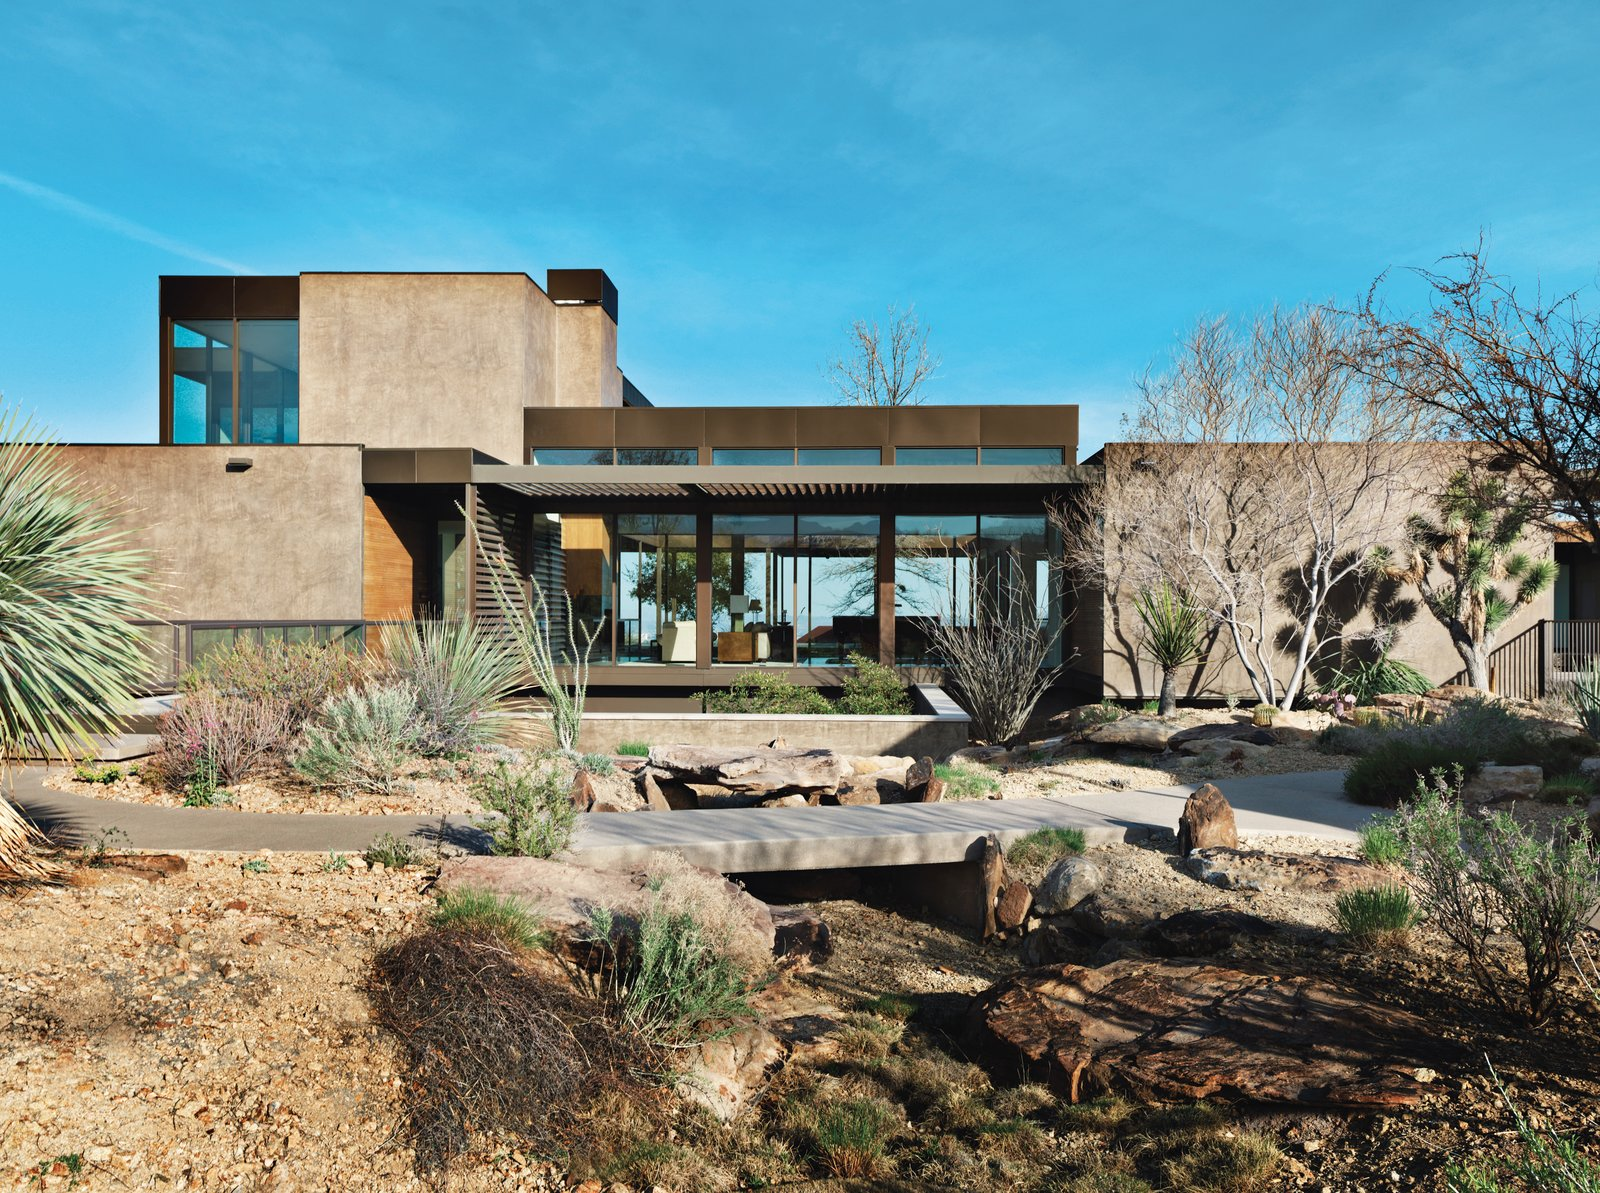 Sage Design Studios transformed the developer-flattened landscape into a picturesque desert setting with naturalistic undulations, meandering trails,and drought-tolerant shrubs.  Prefab from A Picturesque Desert Prefab